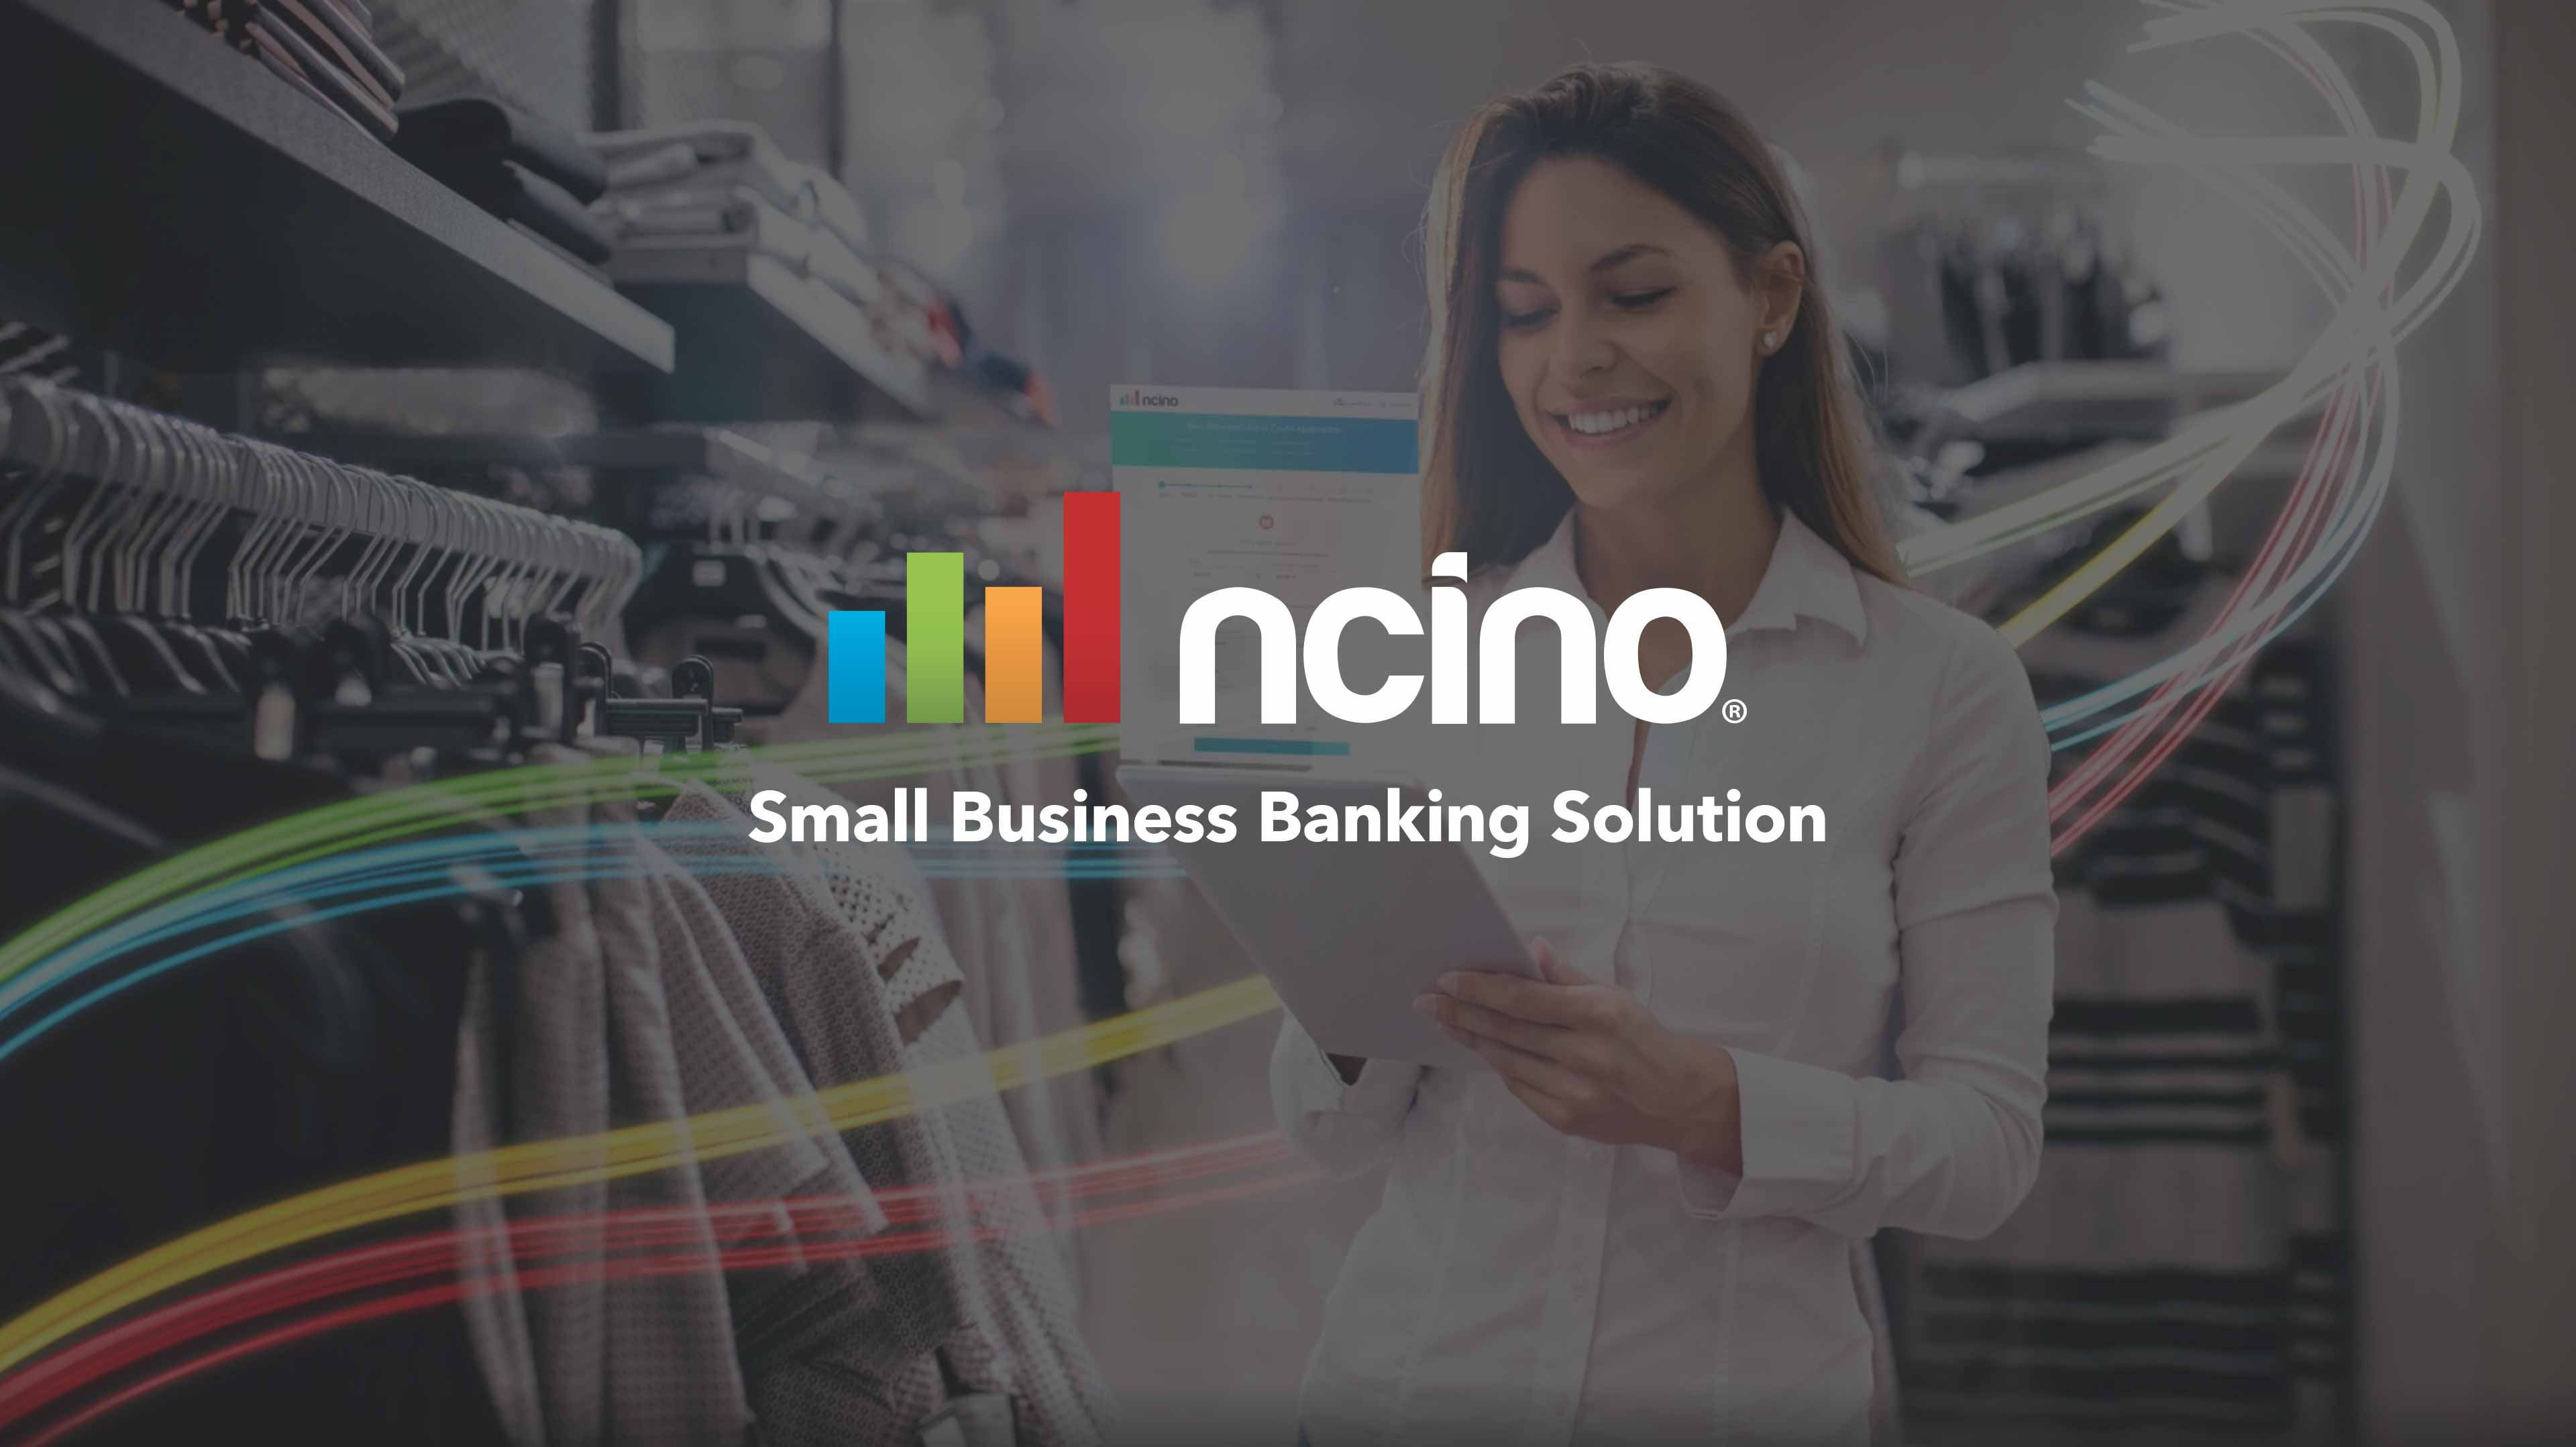 Small Business Banking >> Ncino Videos Small Business Banking Solution